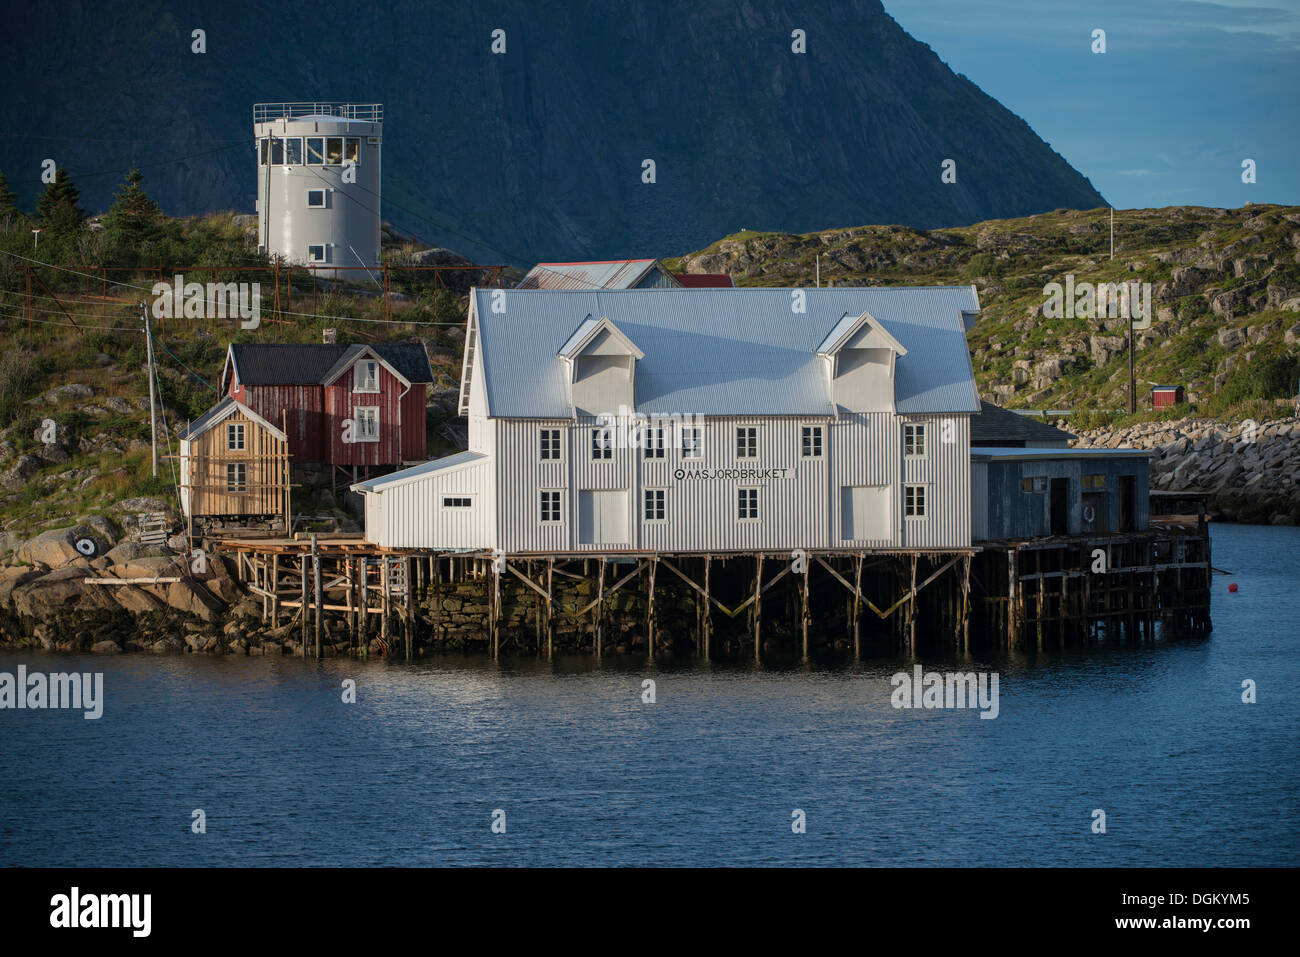 White warehouse by the fjord, modern tower or silo at back, Fischerdorf Skrova,Inselgruppe Skrova, Vestfjord, Lofoten, Nordland - Stock Image